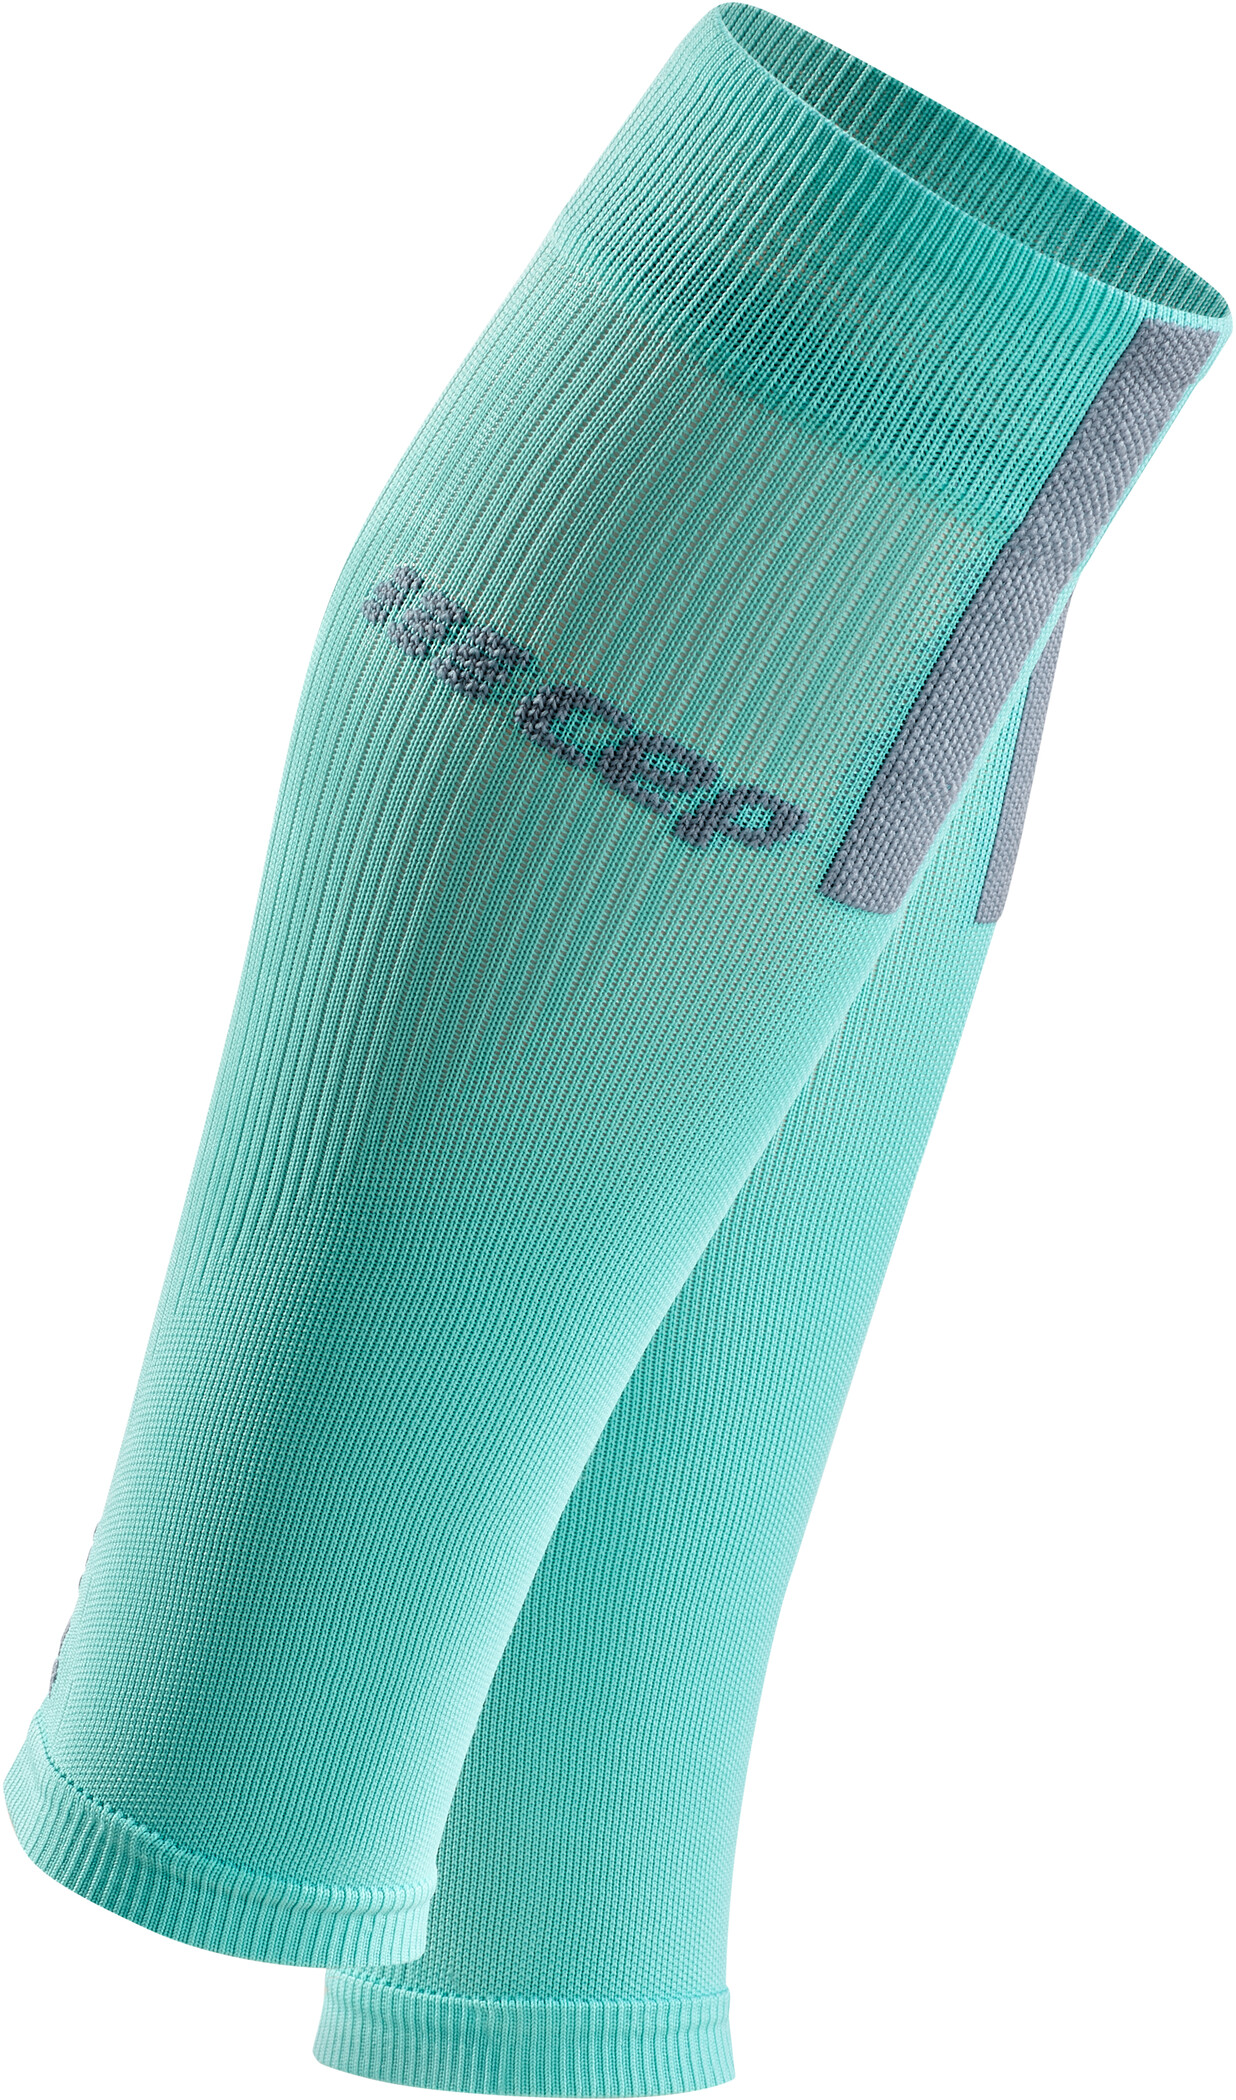 cep Calf Sleeves 3.0 Damer, ice/grey (2019) | Compression